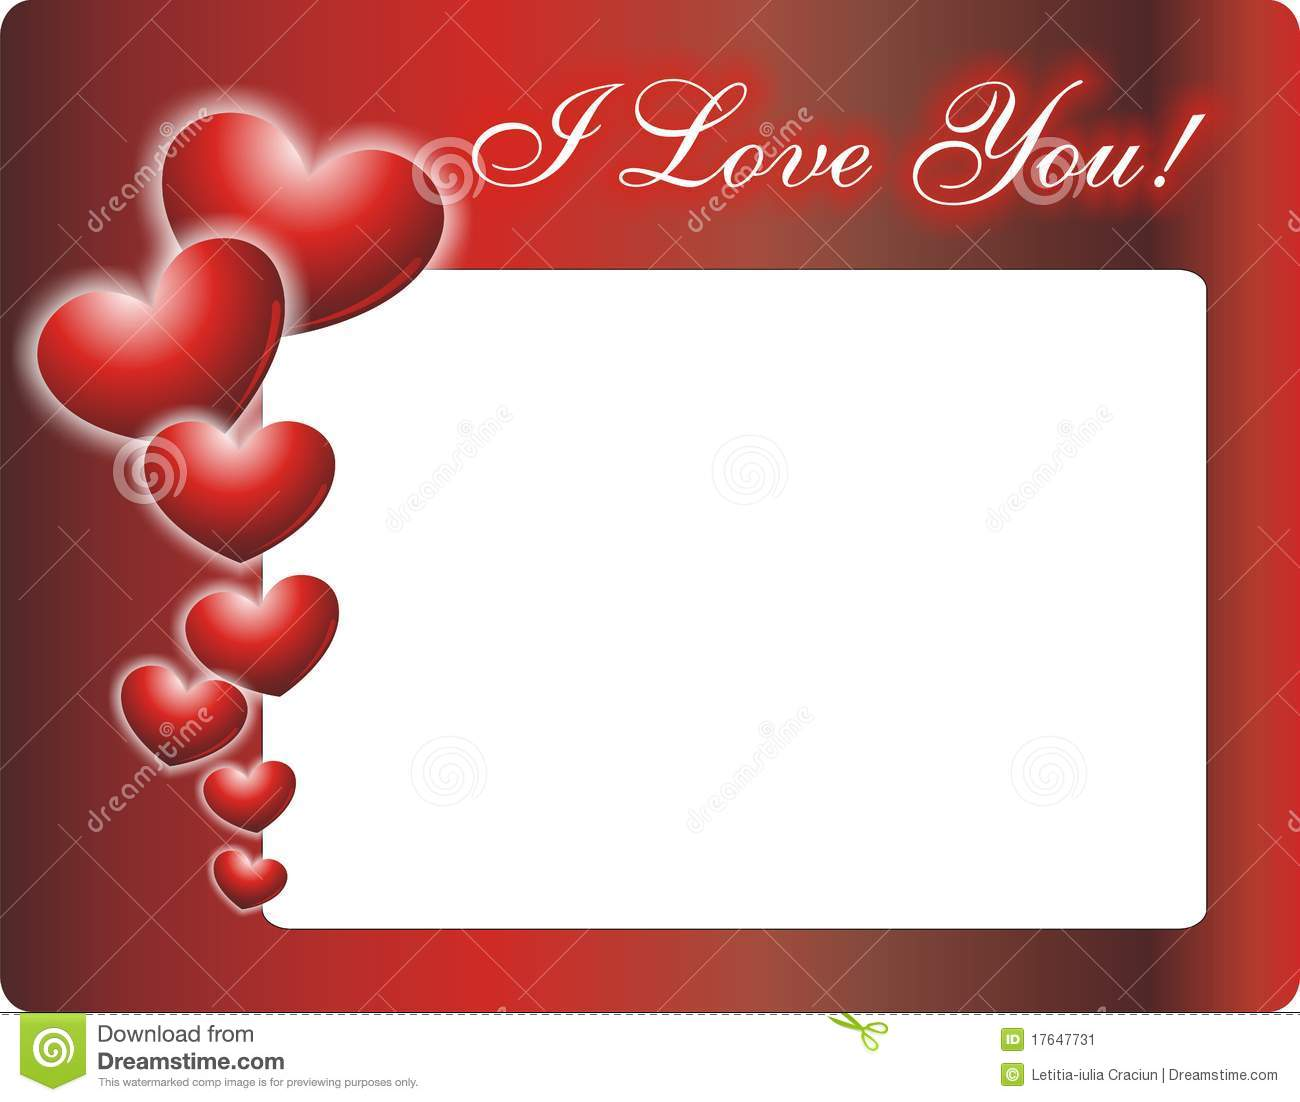 Love You Photo Frame Stock Image - Image: 17647731